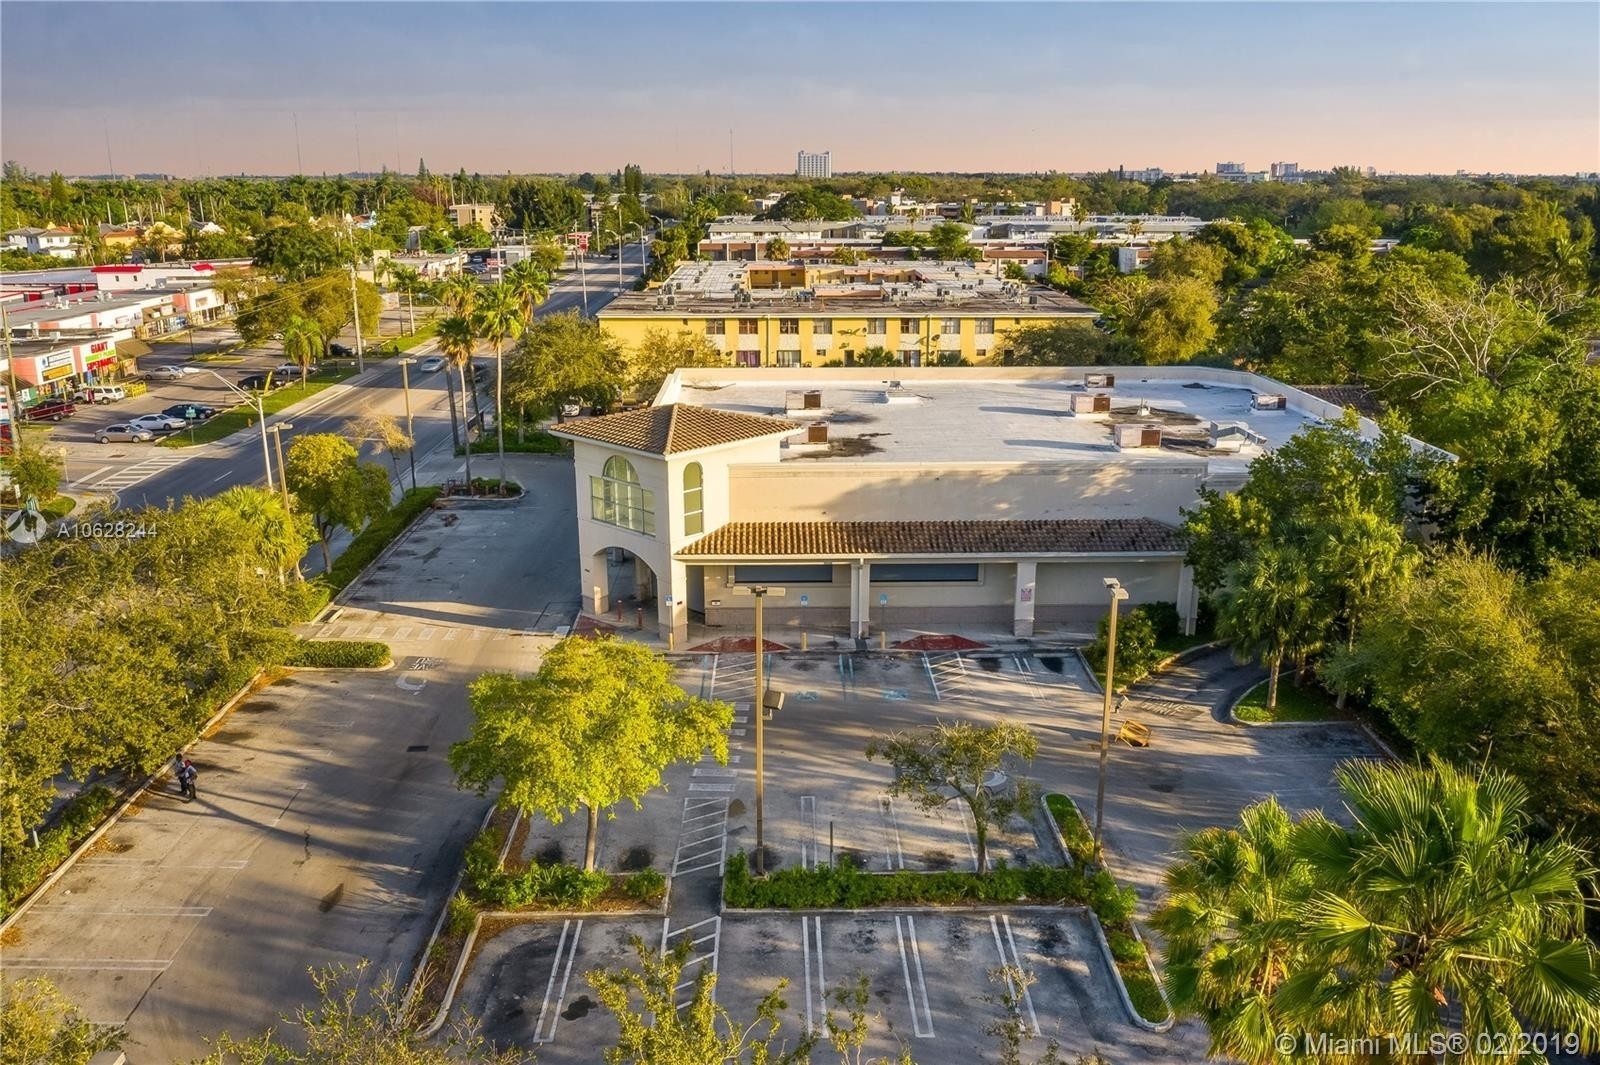 Commercial / Office for Sale at Golden Glades, Miami, FL 33161